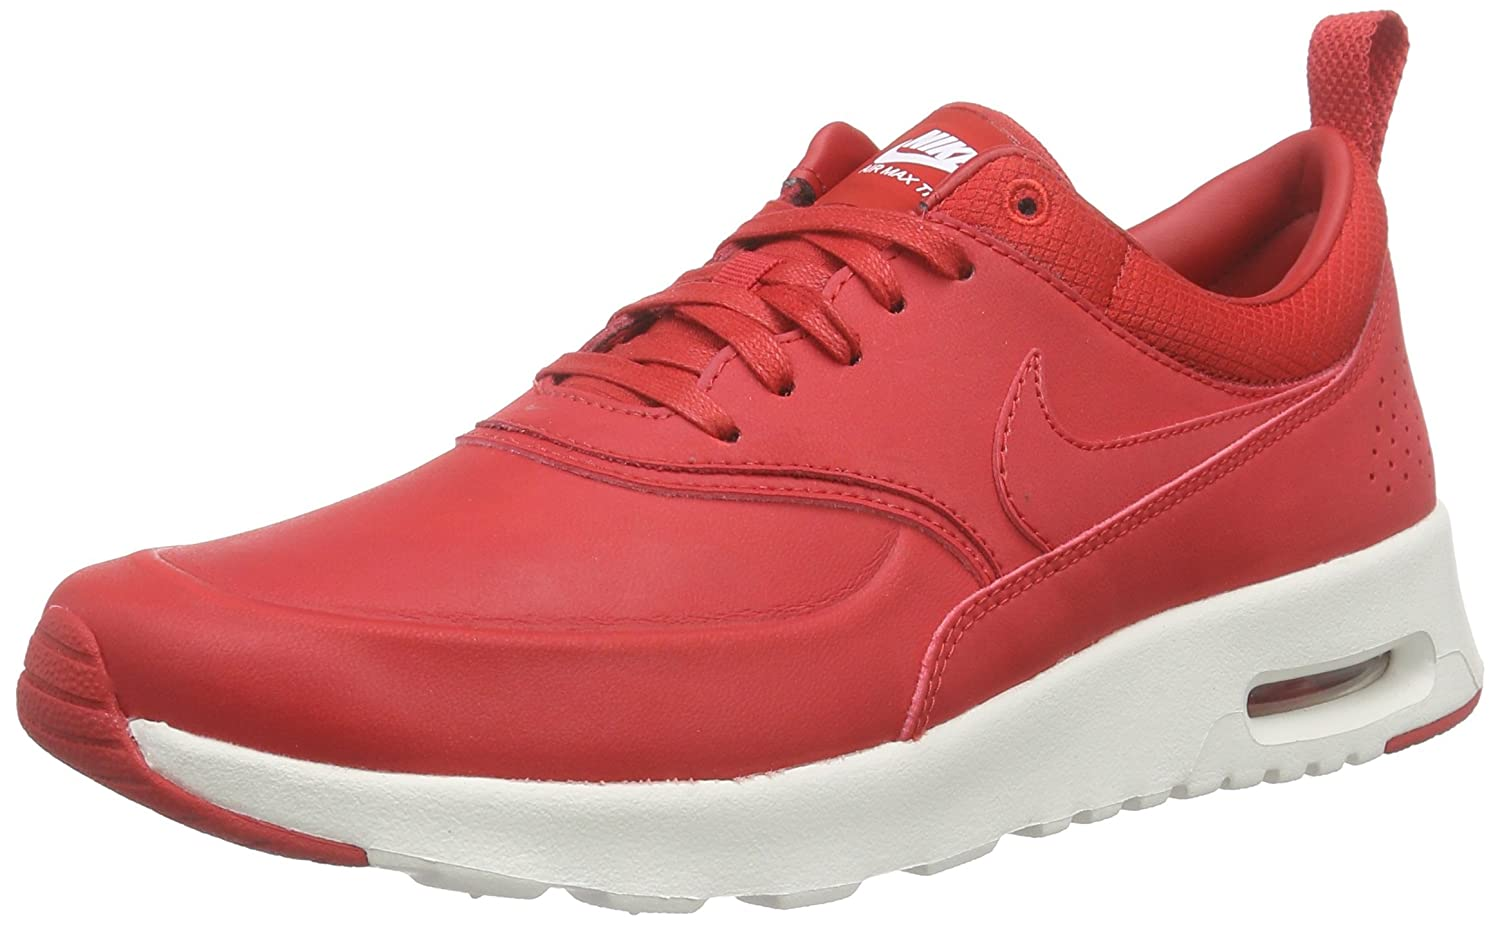 Details about Nike 616723 Women's Air Max Thea Premium Low